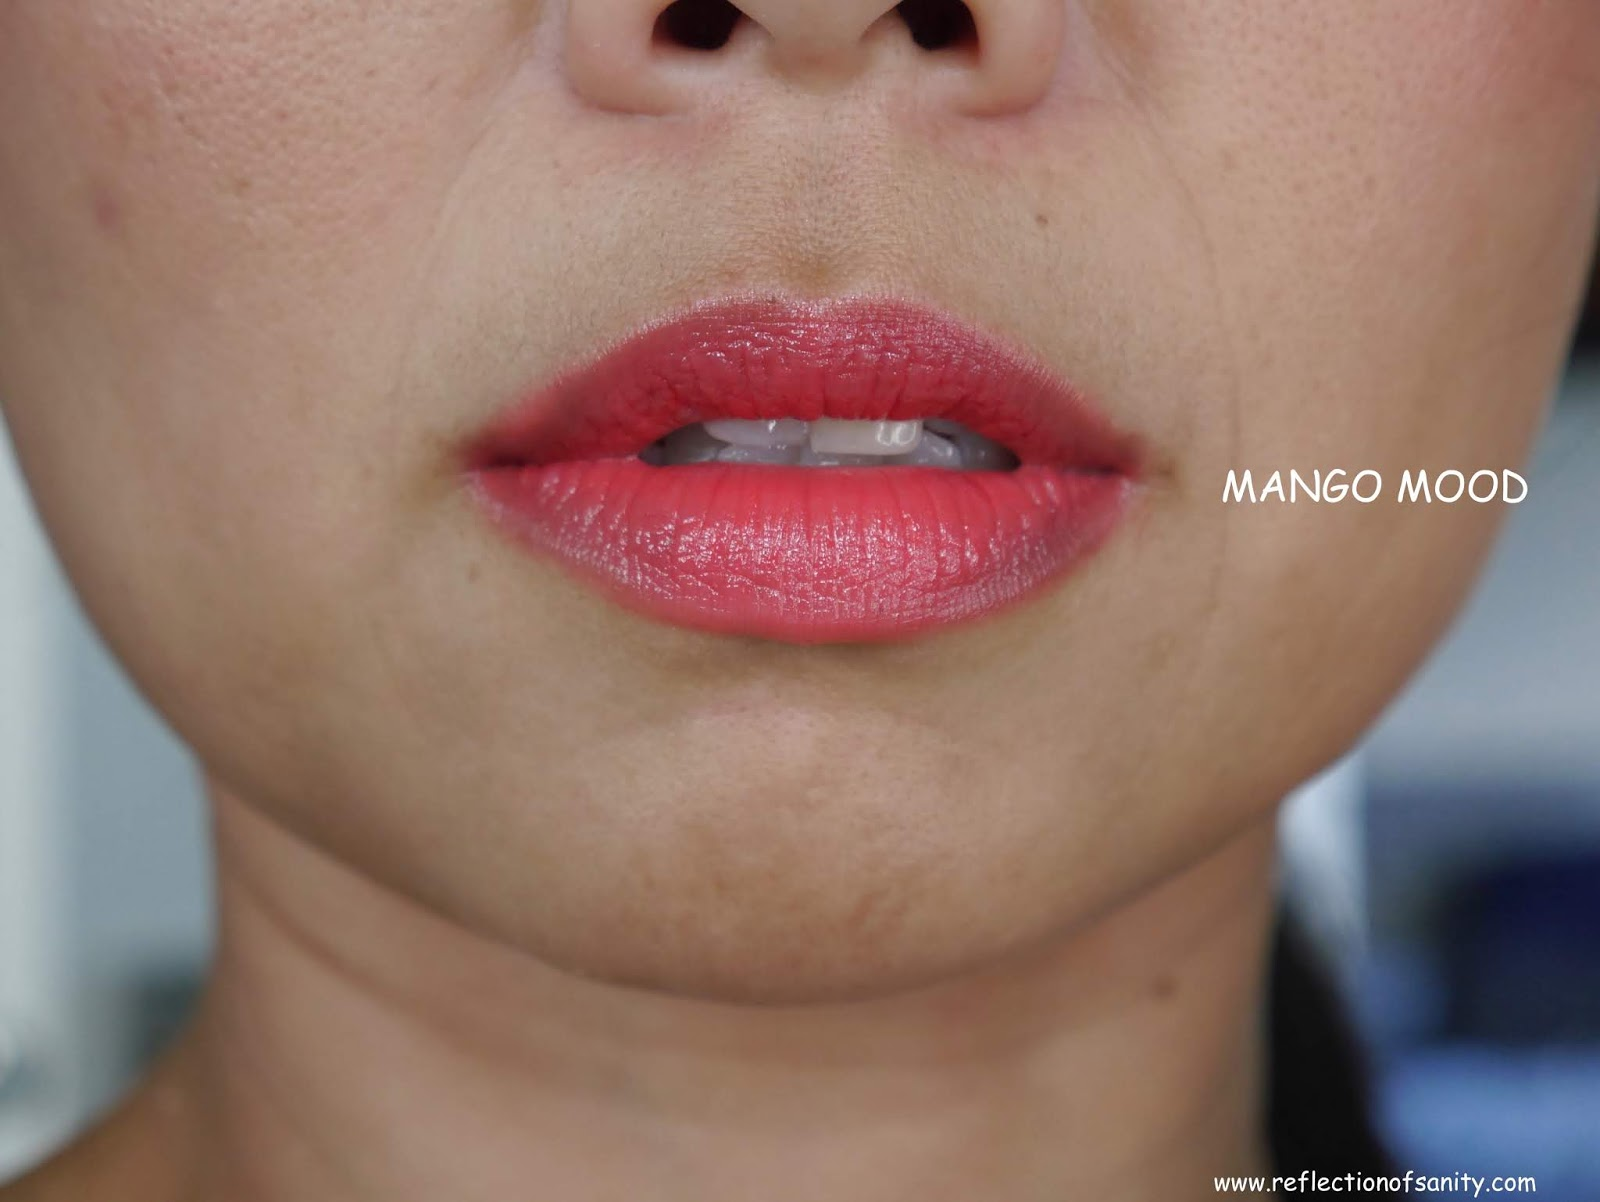 Bobbi Brown Crushed Liquid Lipstick MANGO MOOD